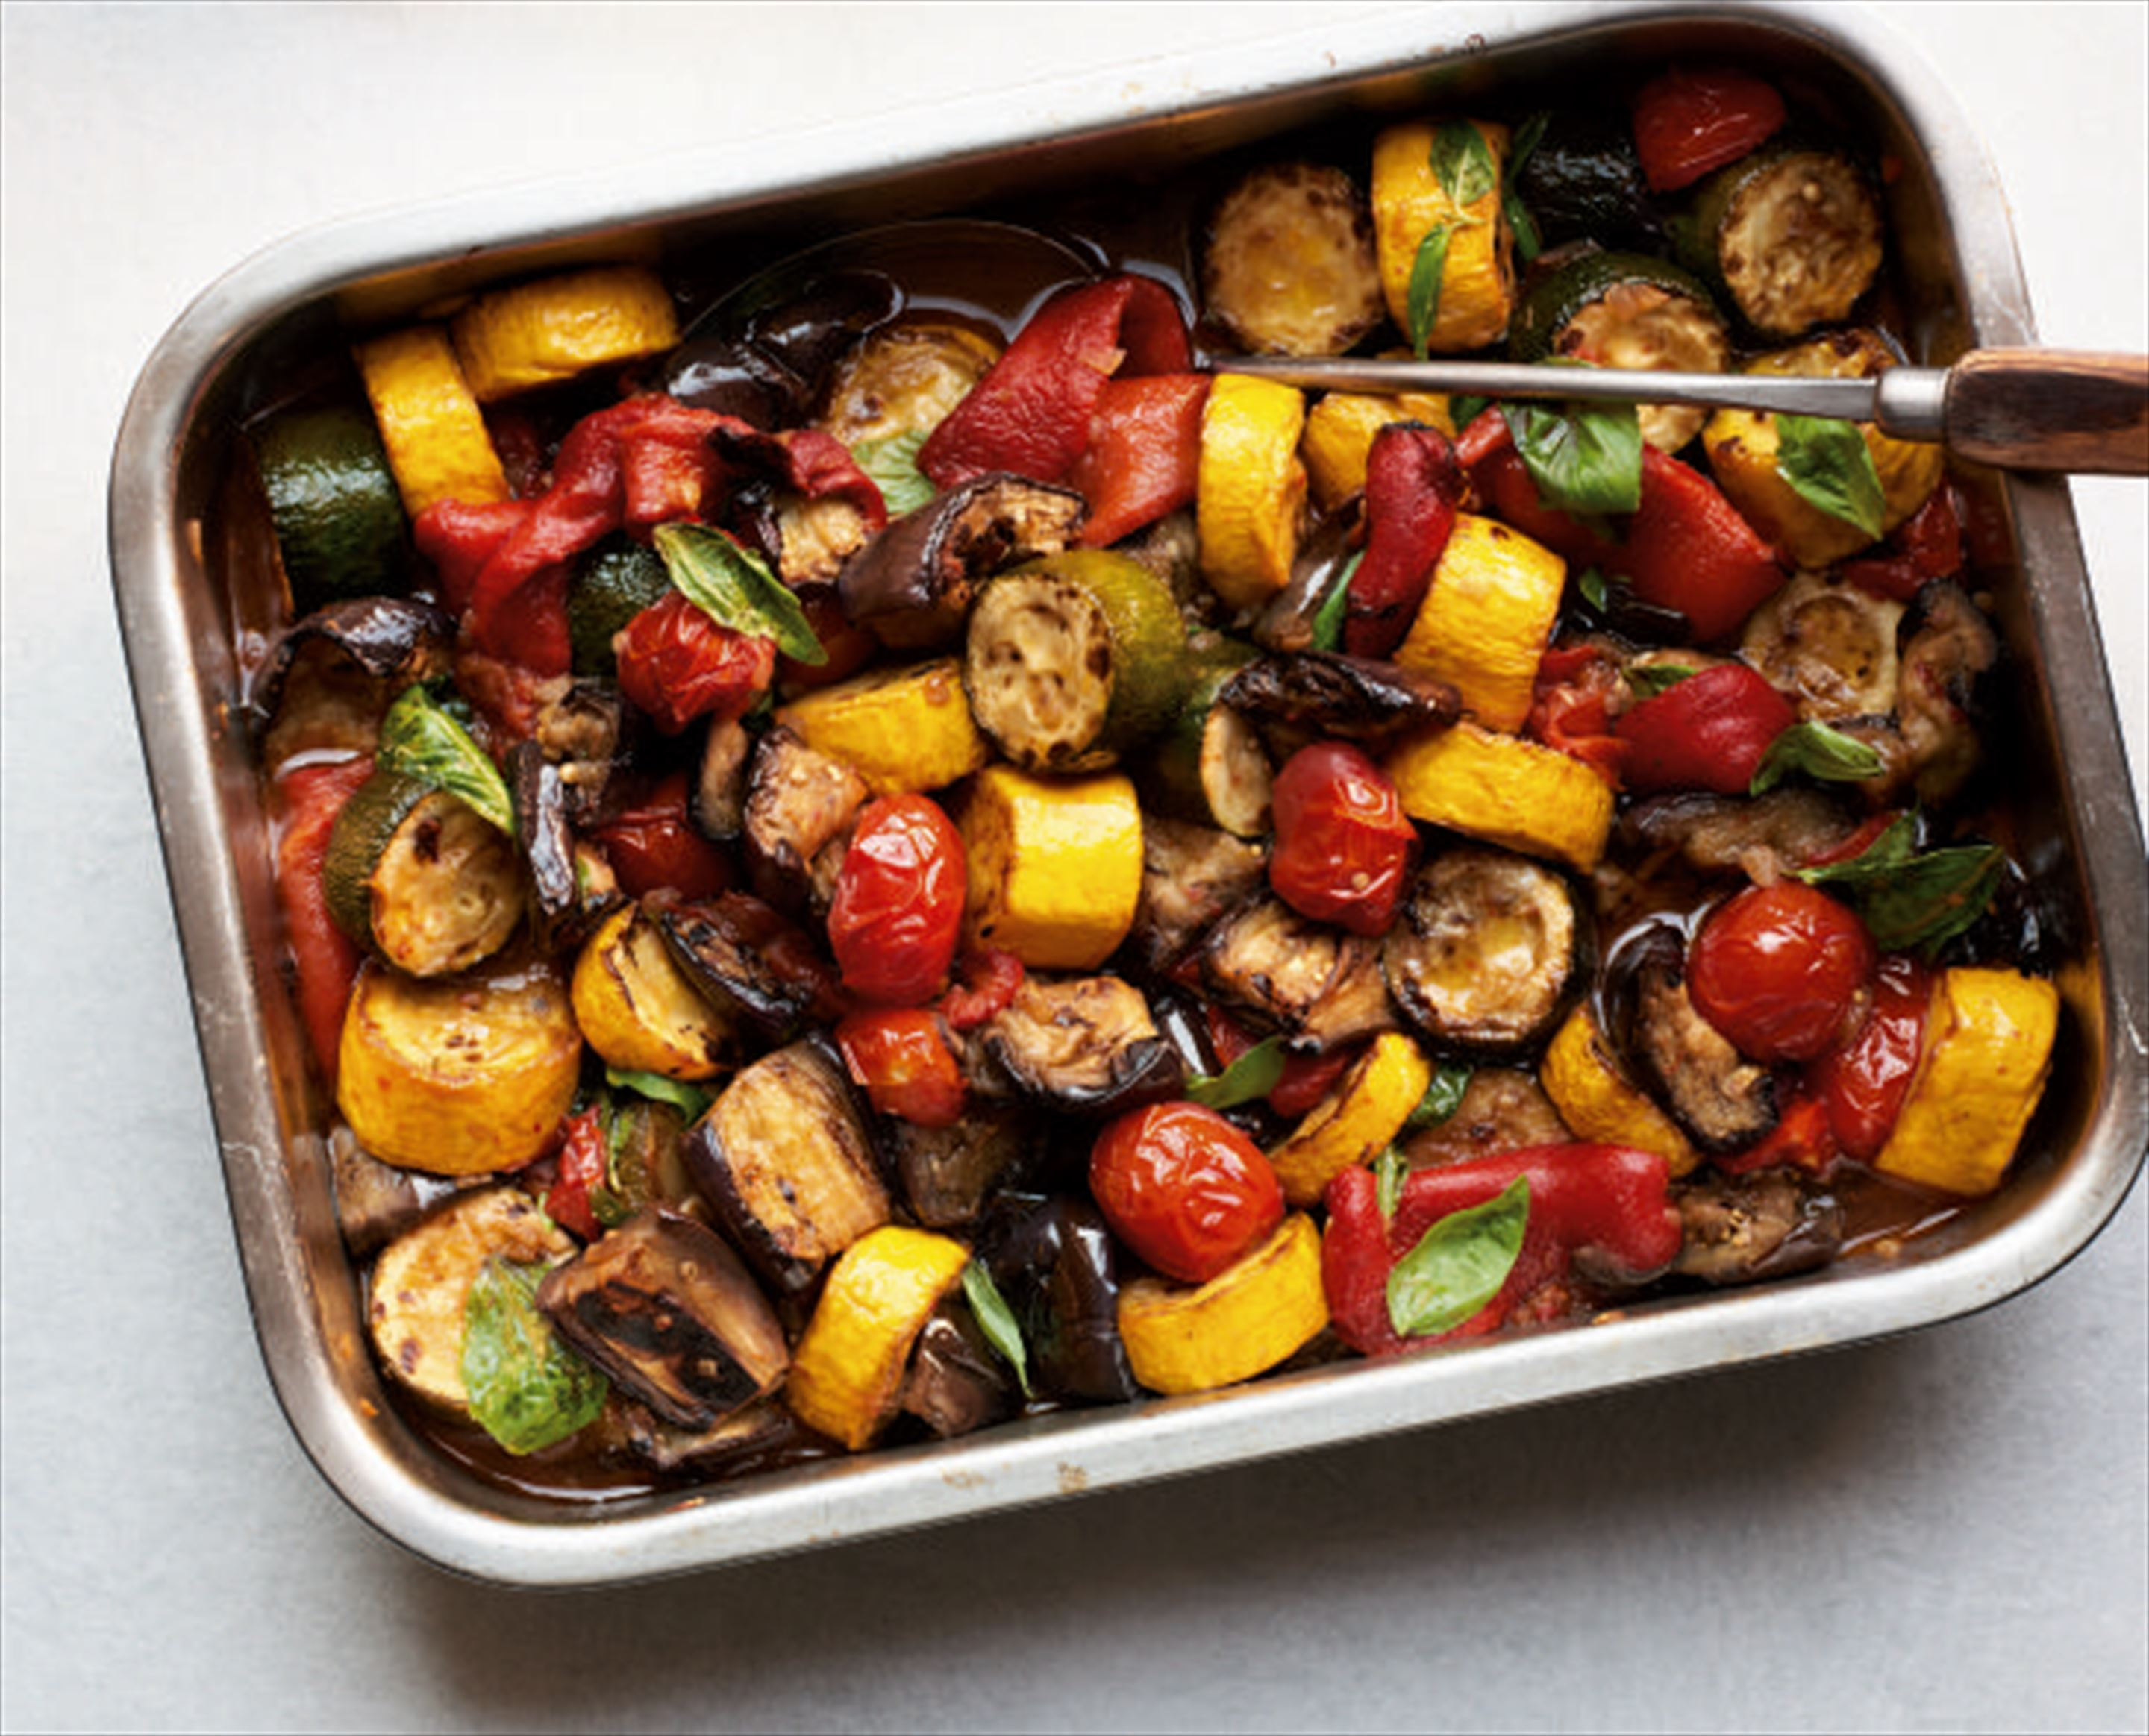 Smoky ratatouille